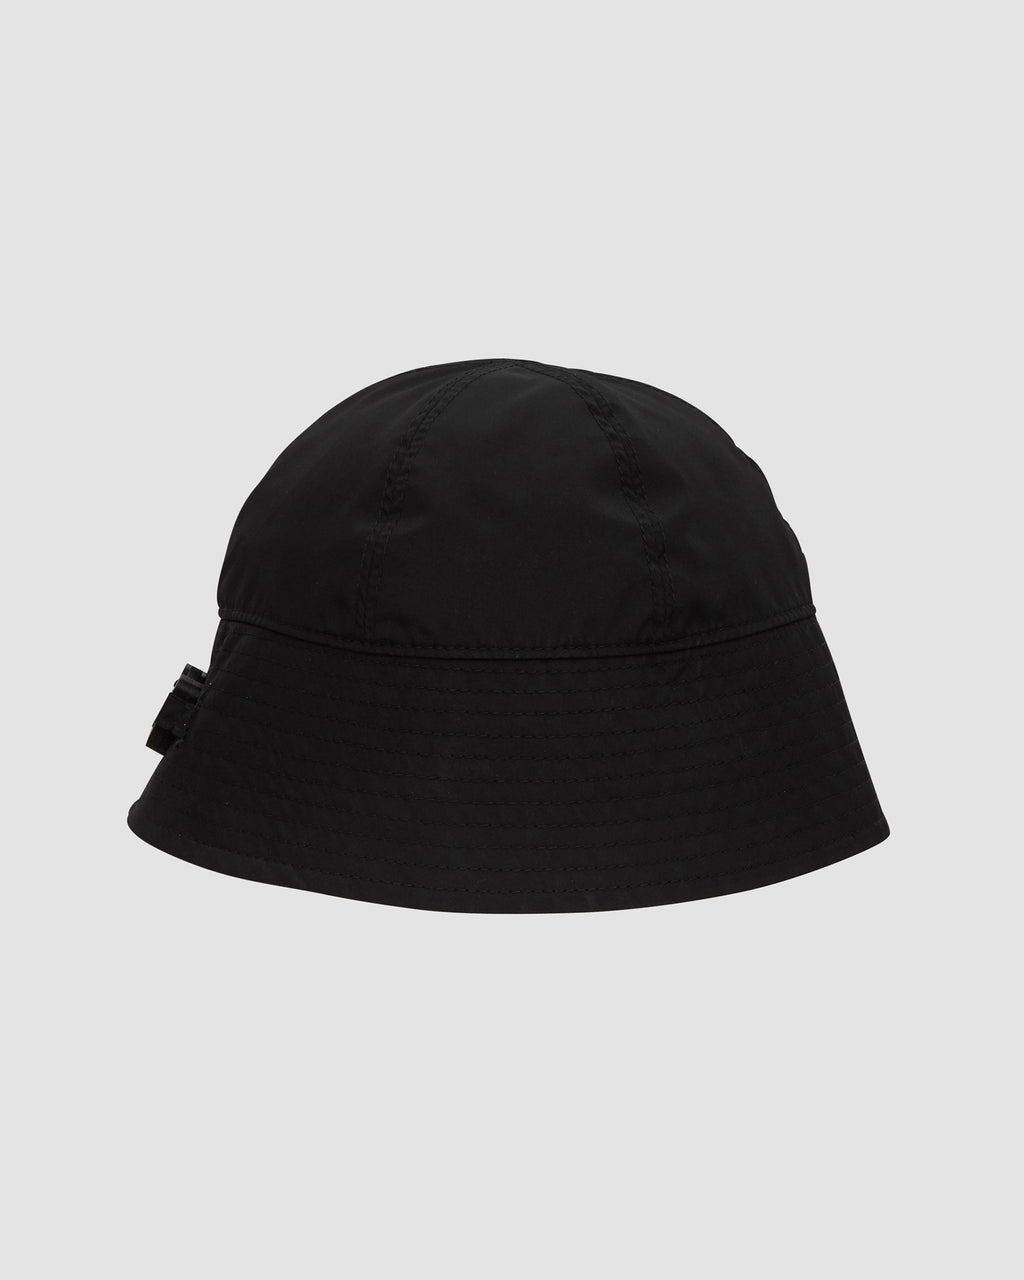 1017 ALYX 9SM | NARROW BUCKET HAT W BUCKLE | Hat | BLACK, Google Shopping, Hat, HATS, Man, S20, S20 Drop II, UNISEX, Woman